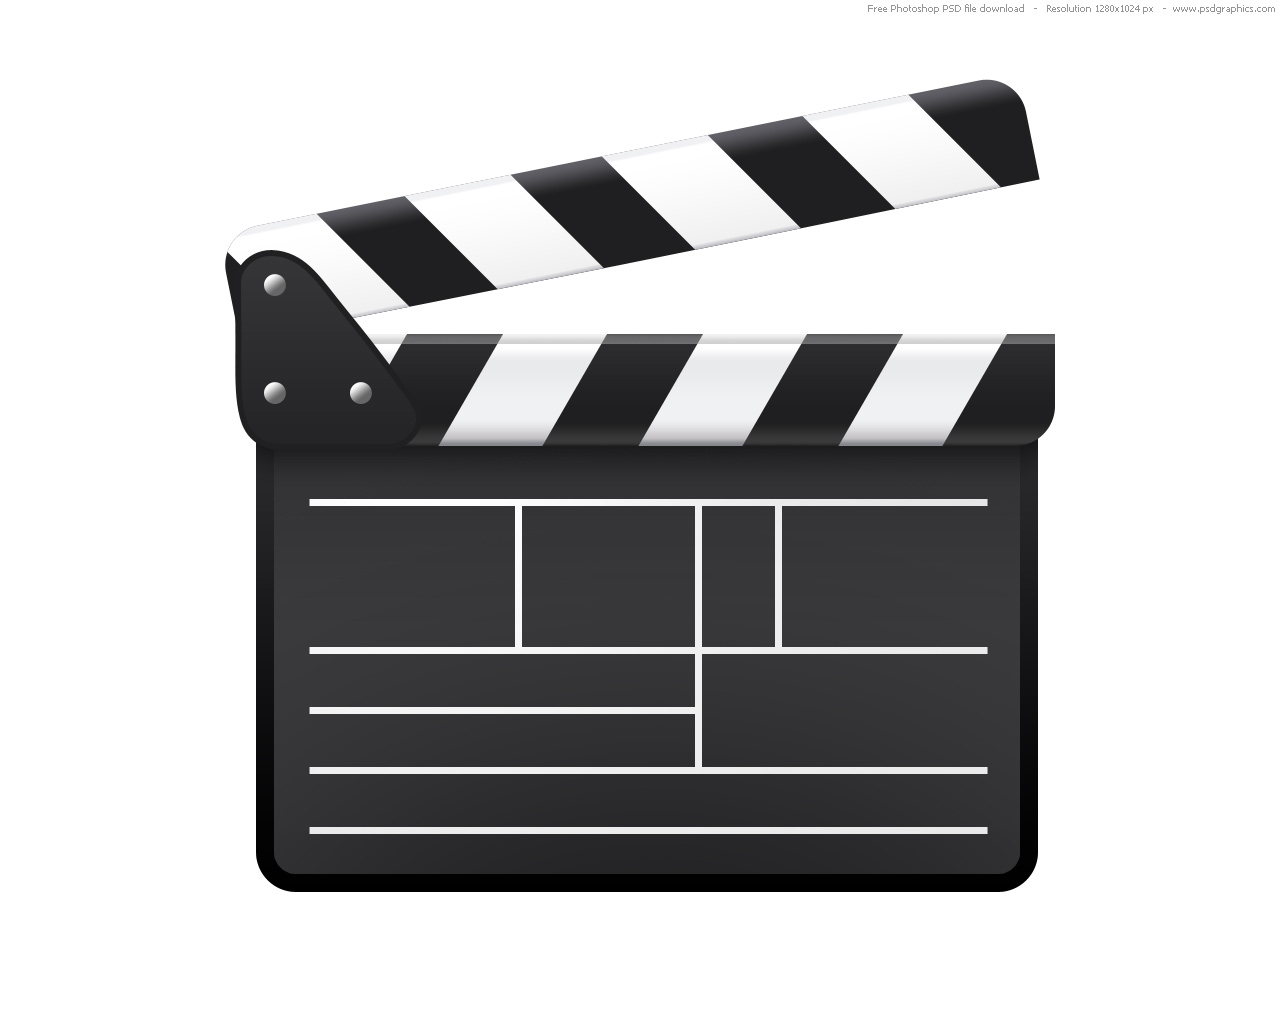 hight resolution of 1280x1024 movie theater clipart black and white clipart panda